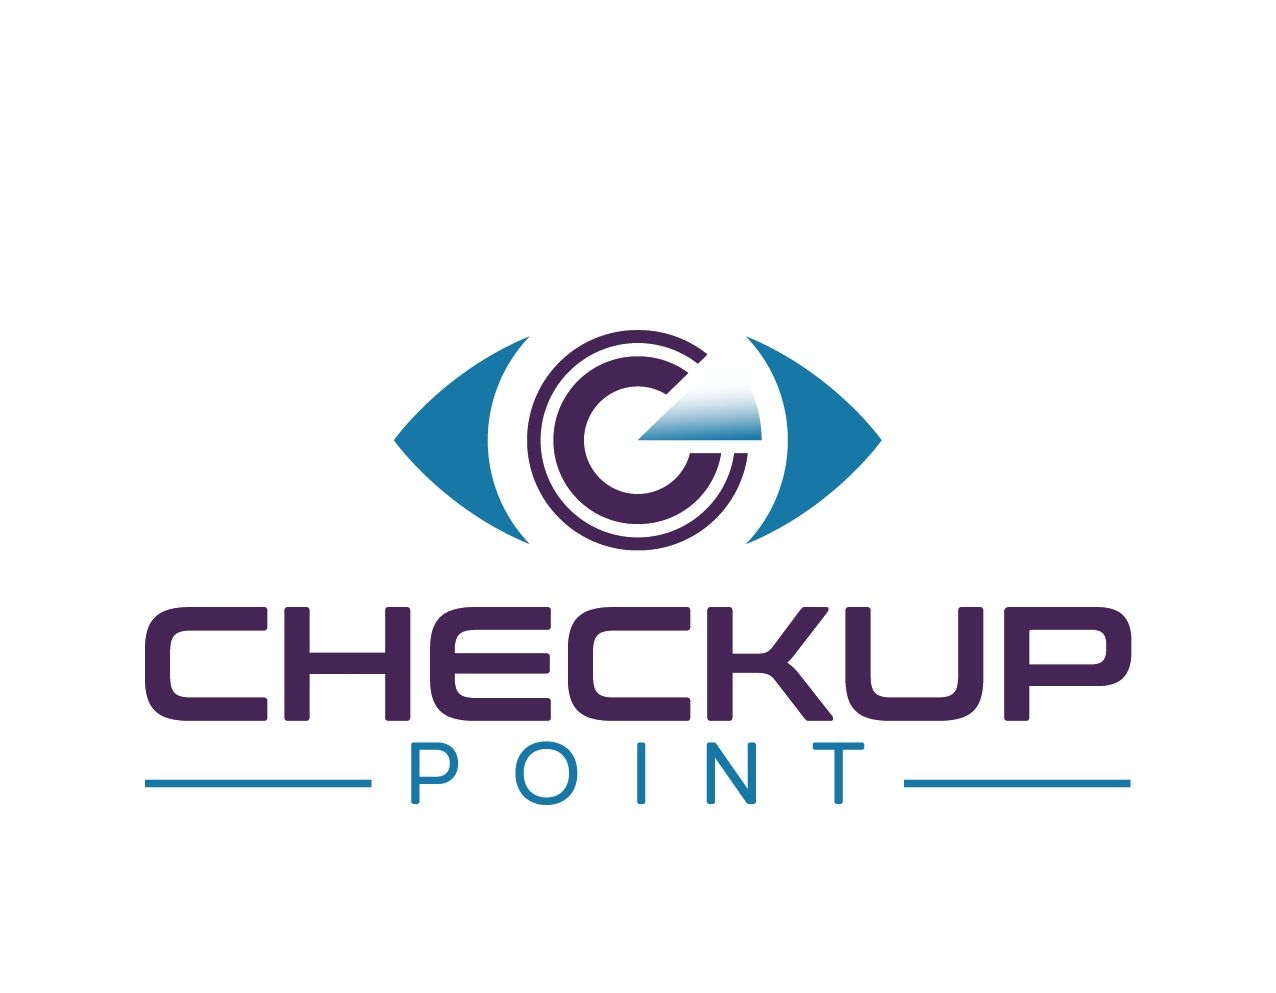 CHECKUP POINT